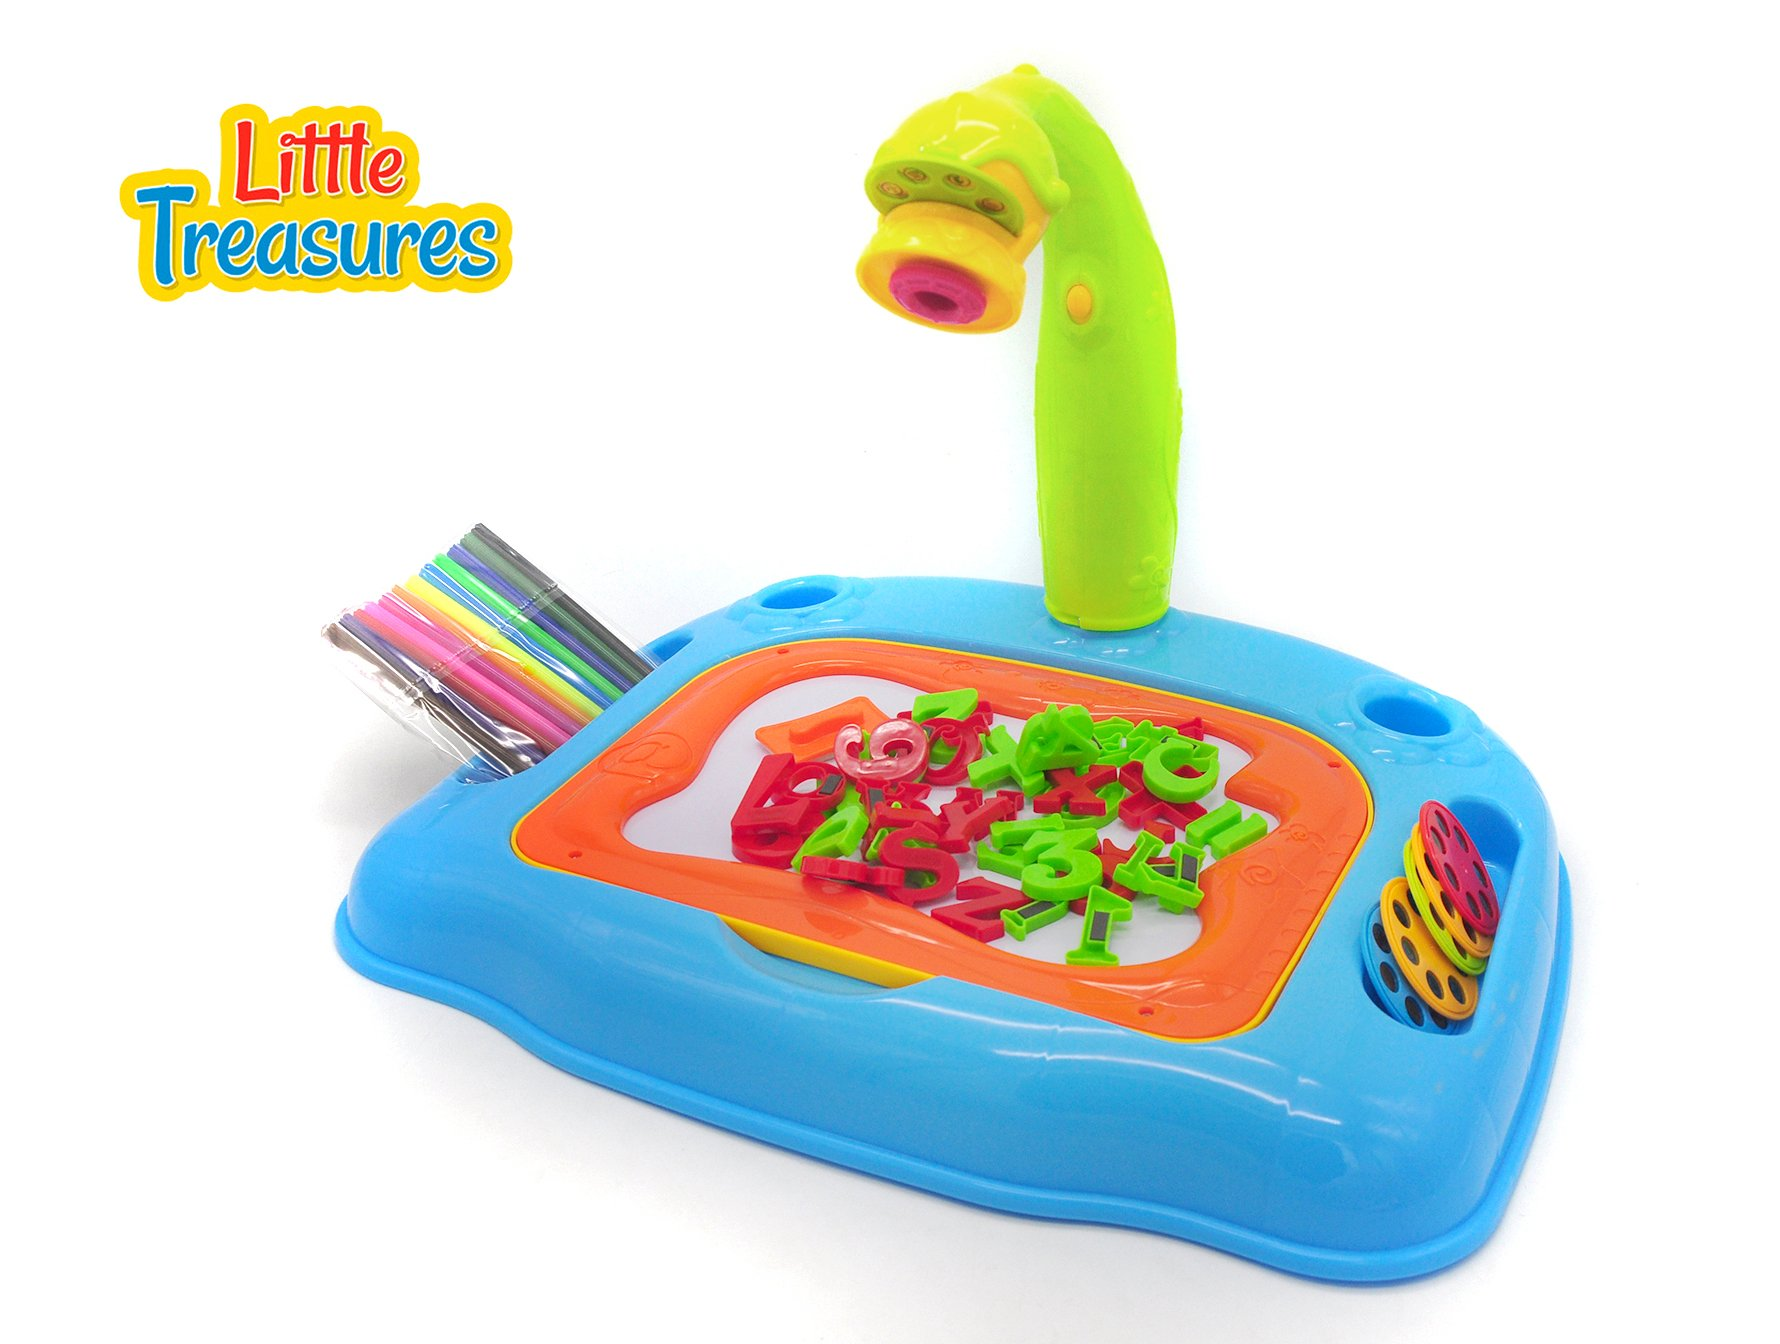 Little Treasures Projector Learning Desk Drawing Board 4-in-1 Educational Table Lamp, Projection Painting and Spelling with Magnetic Letters